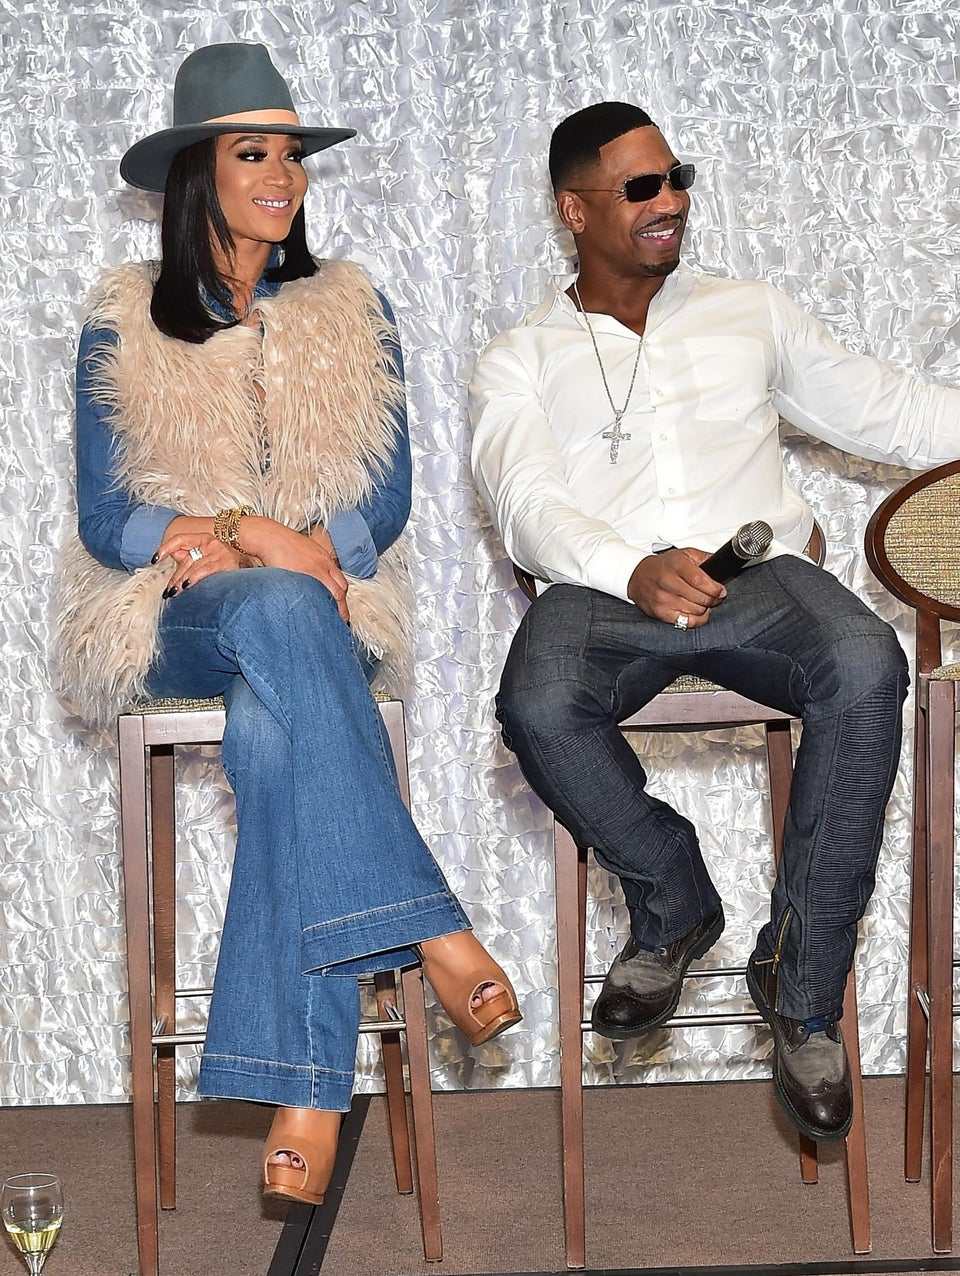 Stevie J Reportedly Doesn't Approve Of Mimi Faust's New Relationship… Hypocrite Much?